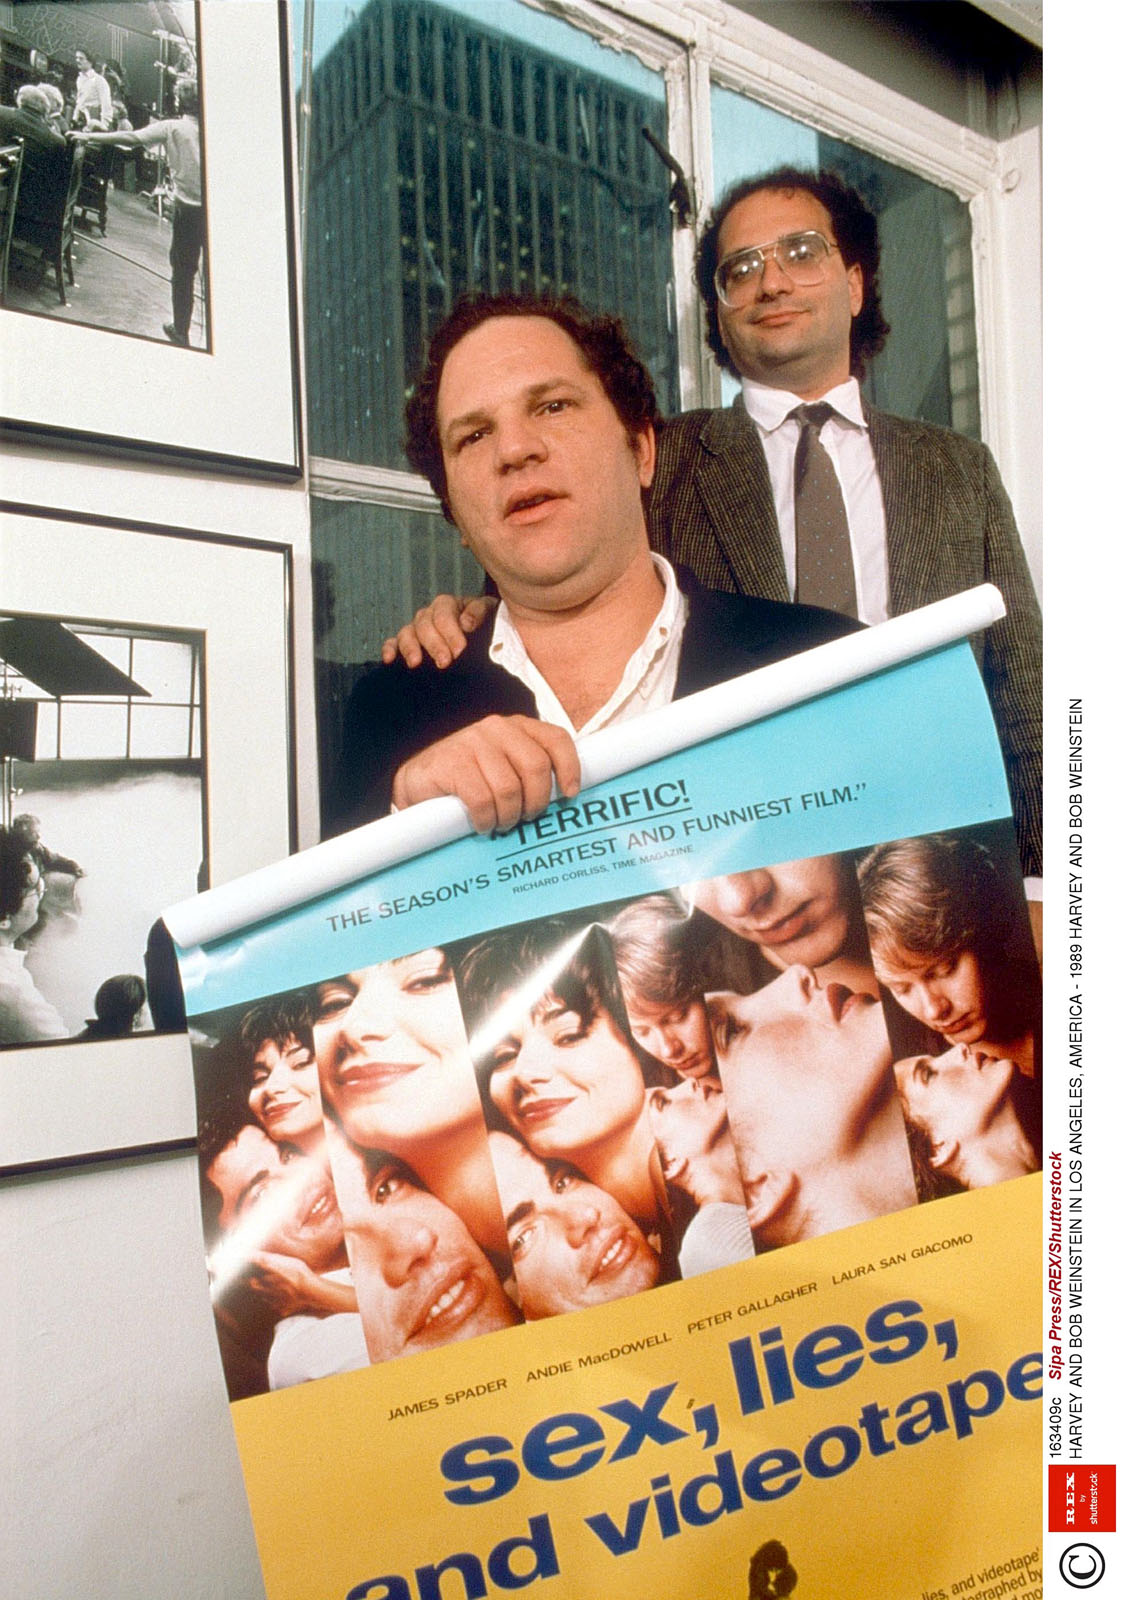 L'intouchable Harvey Weinstein Streaming : l'intouchable, harvey, weinstein, streaming, Photo, Harvey, Weinstein, L'Intouchable,, AlloCiné